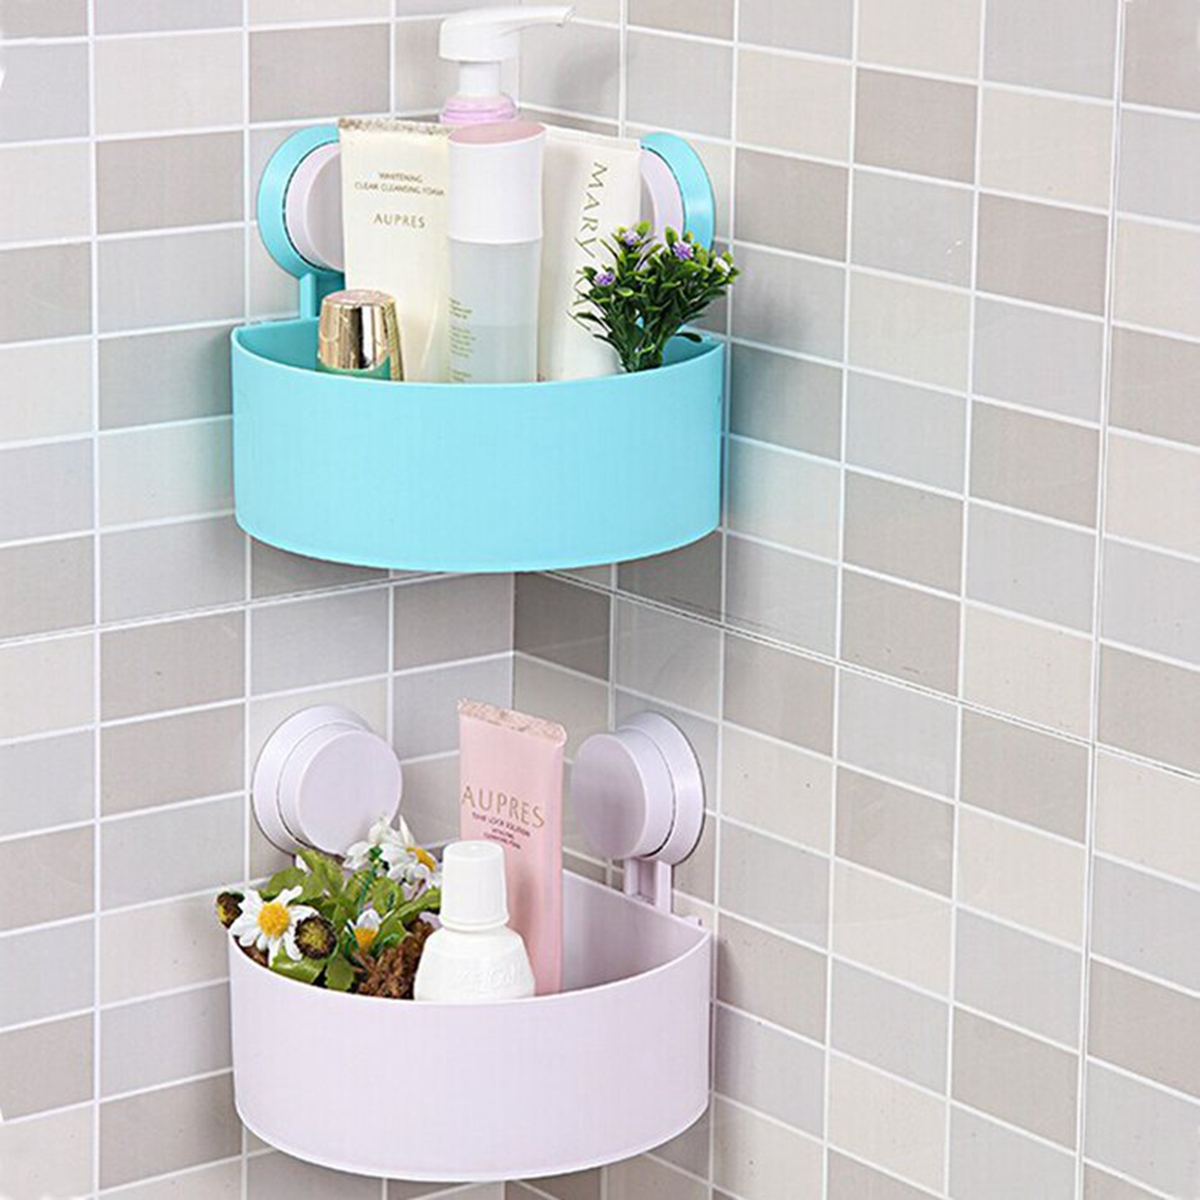 Bathroom Shower Corner Shelves: Bathroom Corner Shelf Rack Organizer Shower Storage Cup